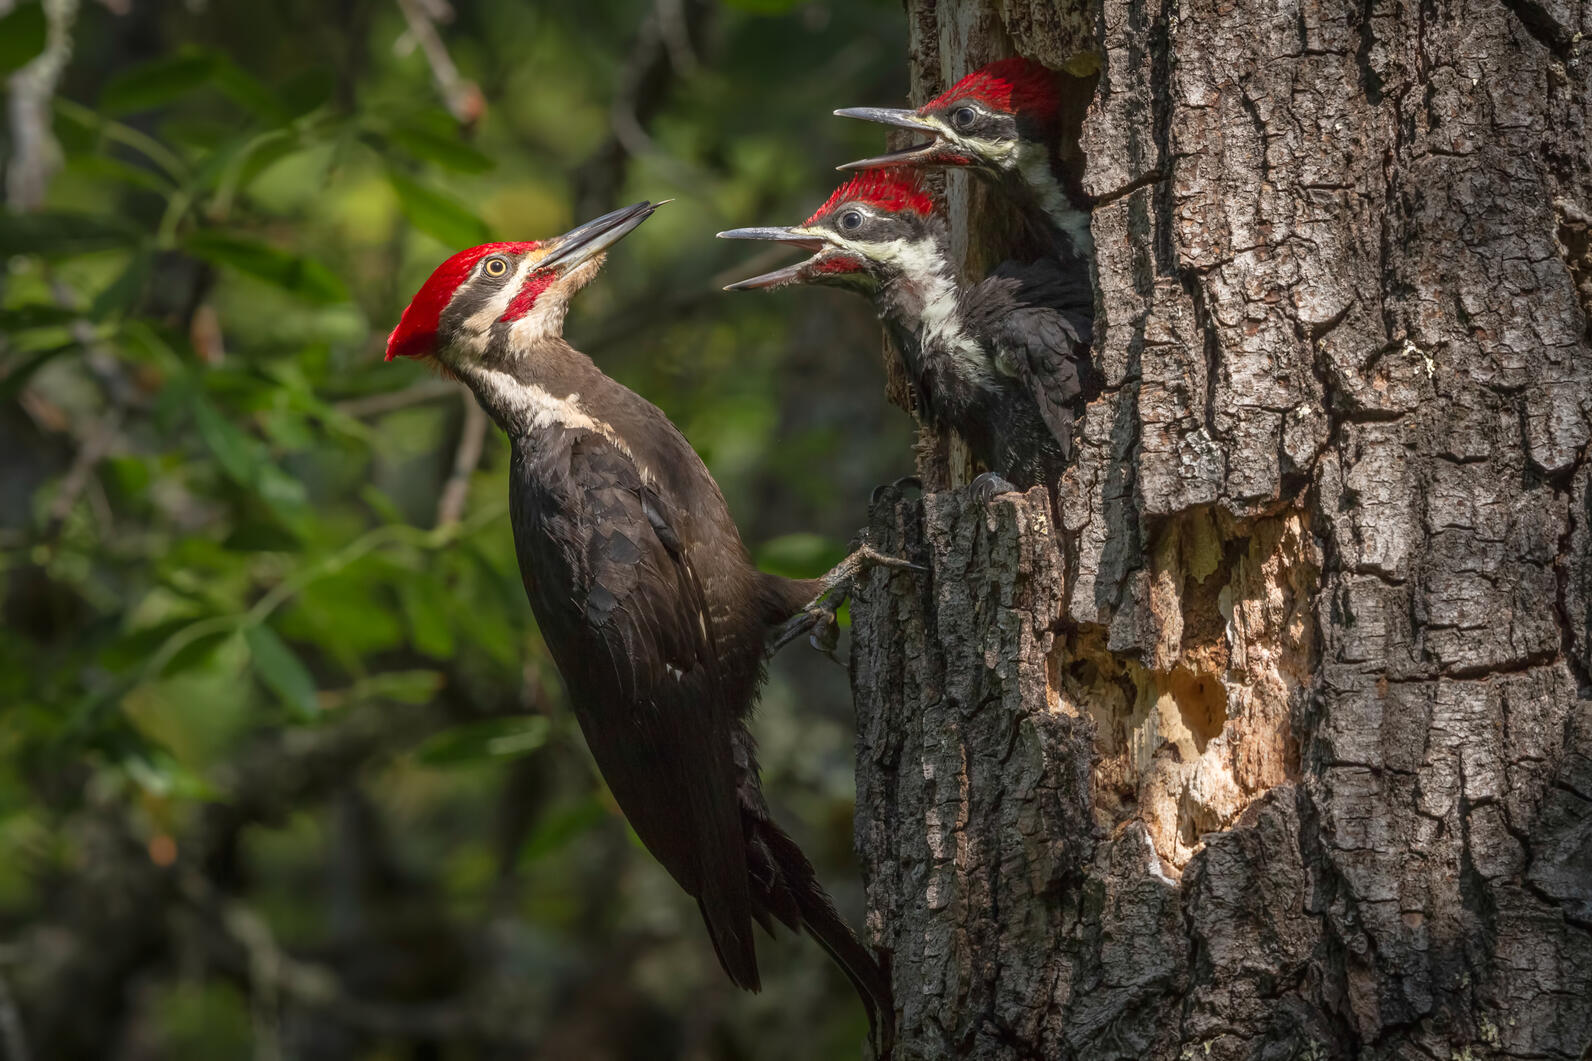 Pileated Woodpecker nestlings in a snag get fed by their parent.